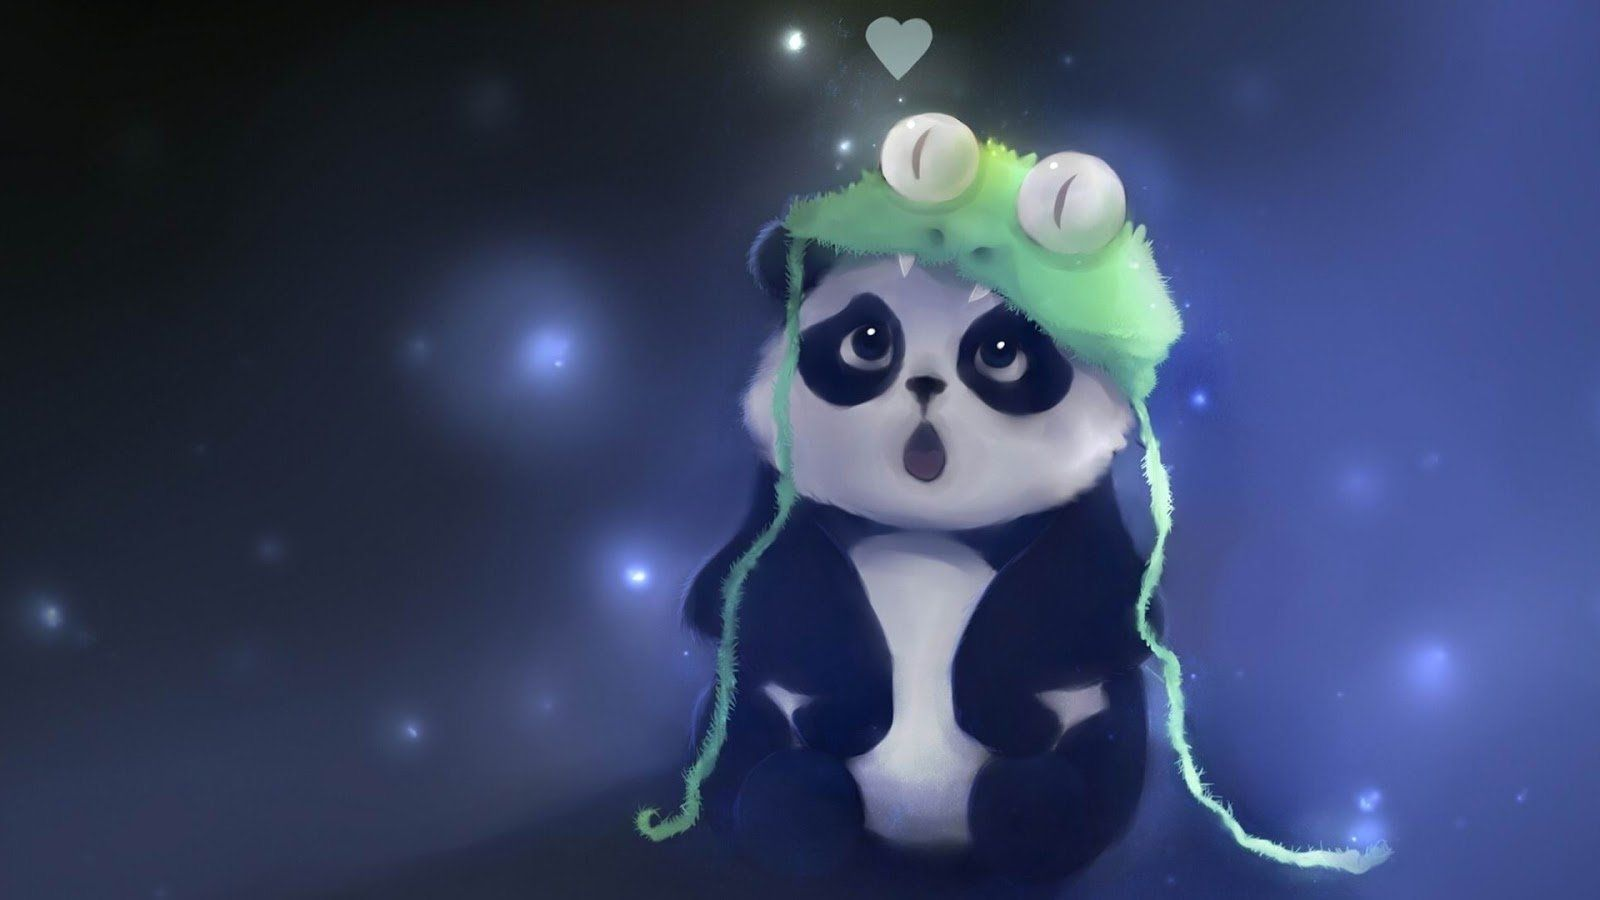 Cartoon Panda Wallpapers Top Free Cartoon Panda Backgrounds Wallpaperaccess